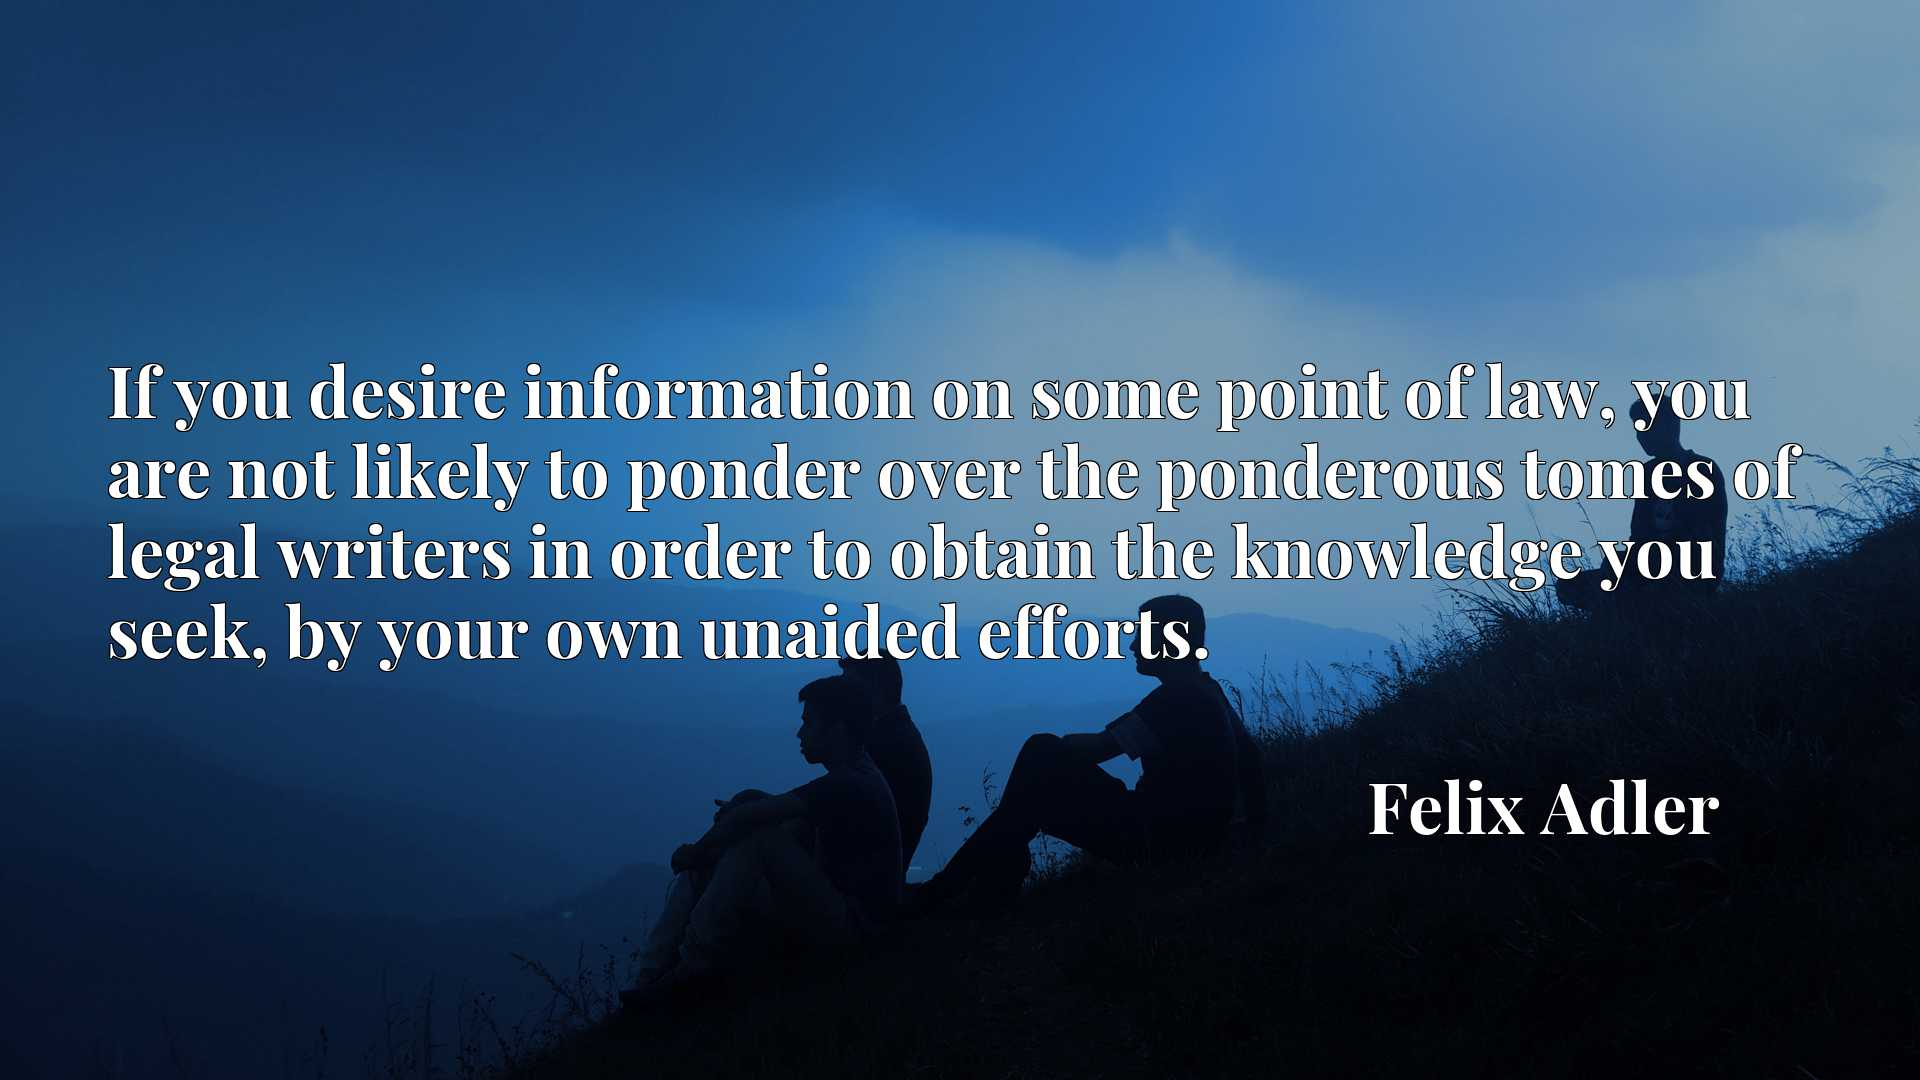 Quote Picture :If you desire information on some point of law, you are not likely to ponder over the ponderous tomes of legal writers in order to obtain the knowledge you seek, by your own unaided efforts.